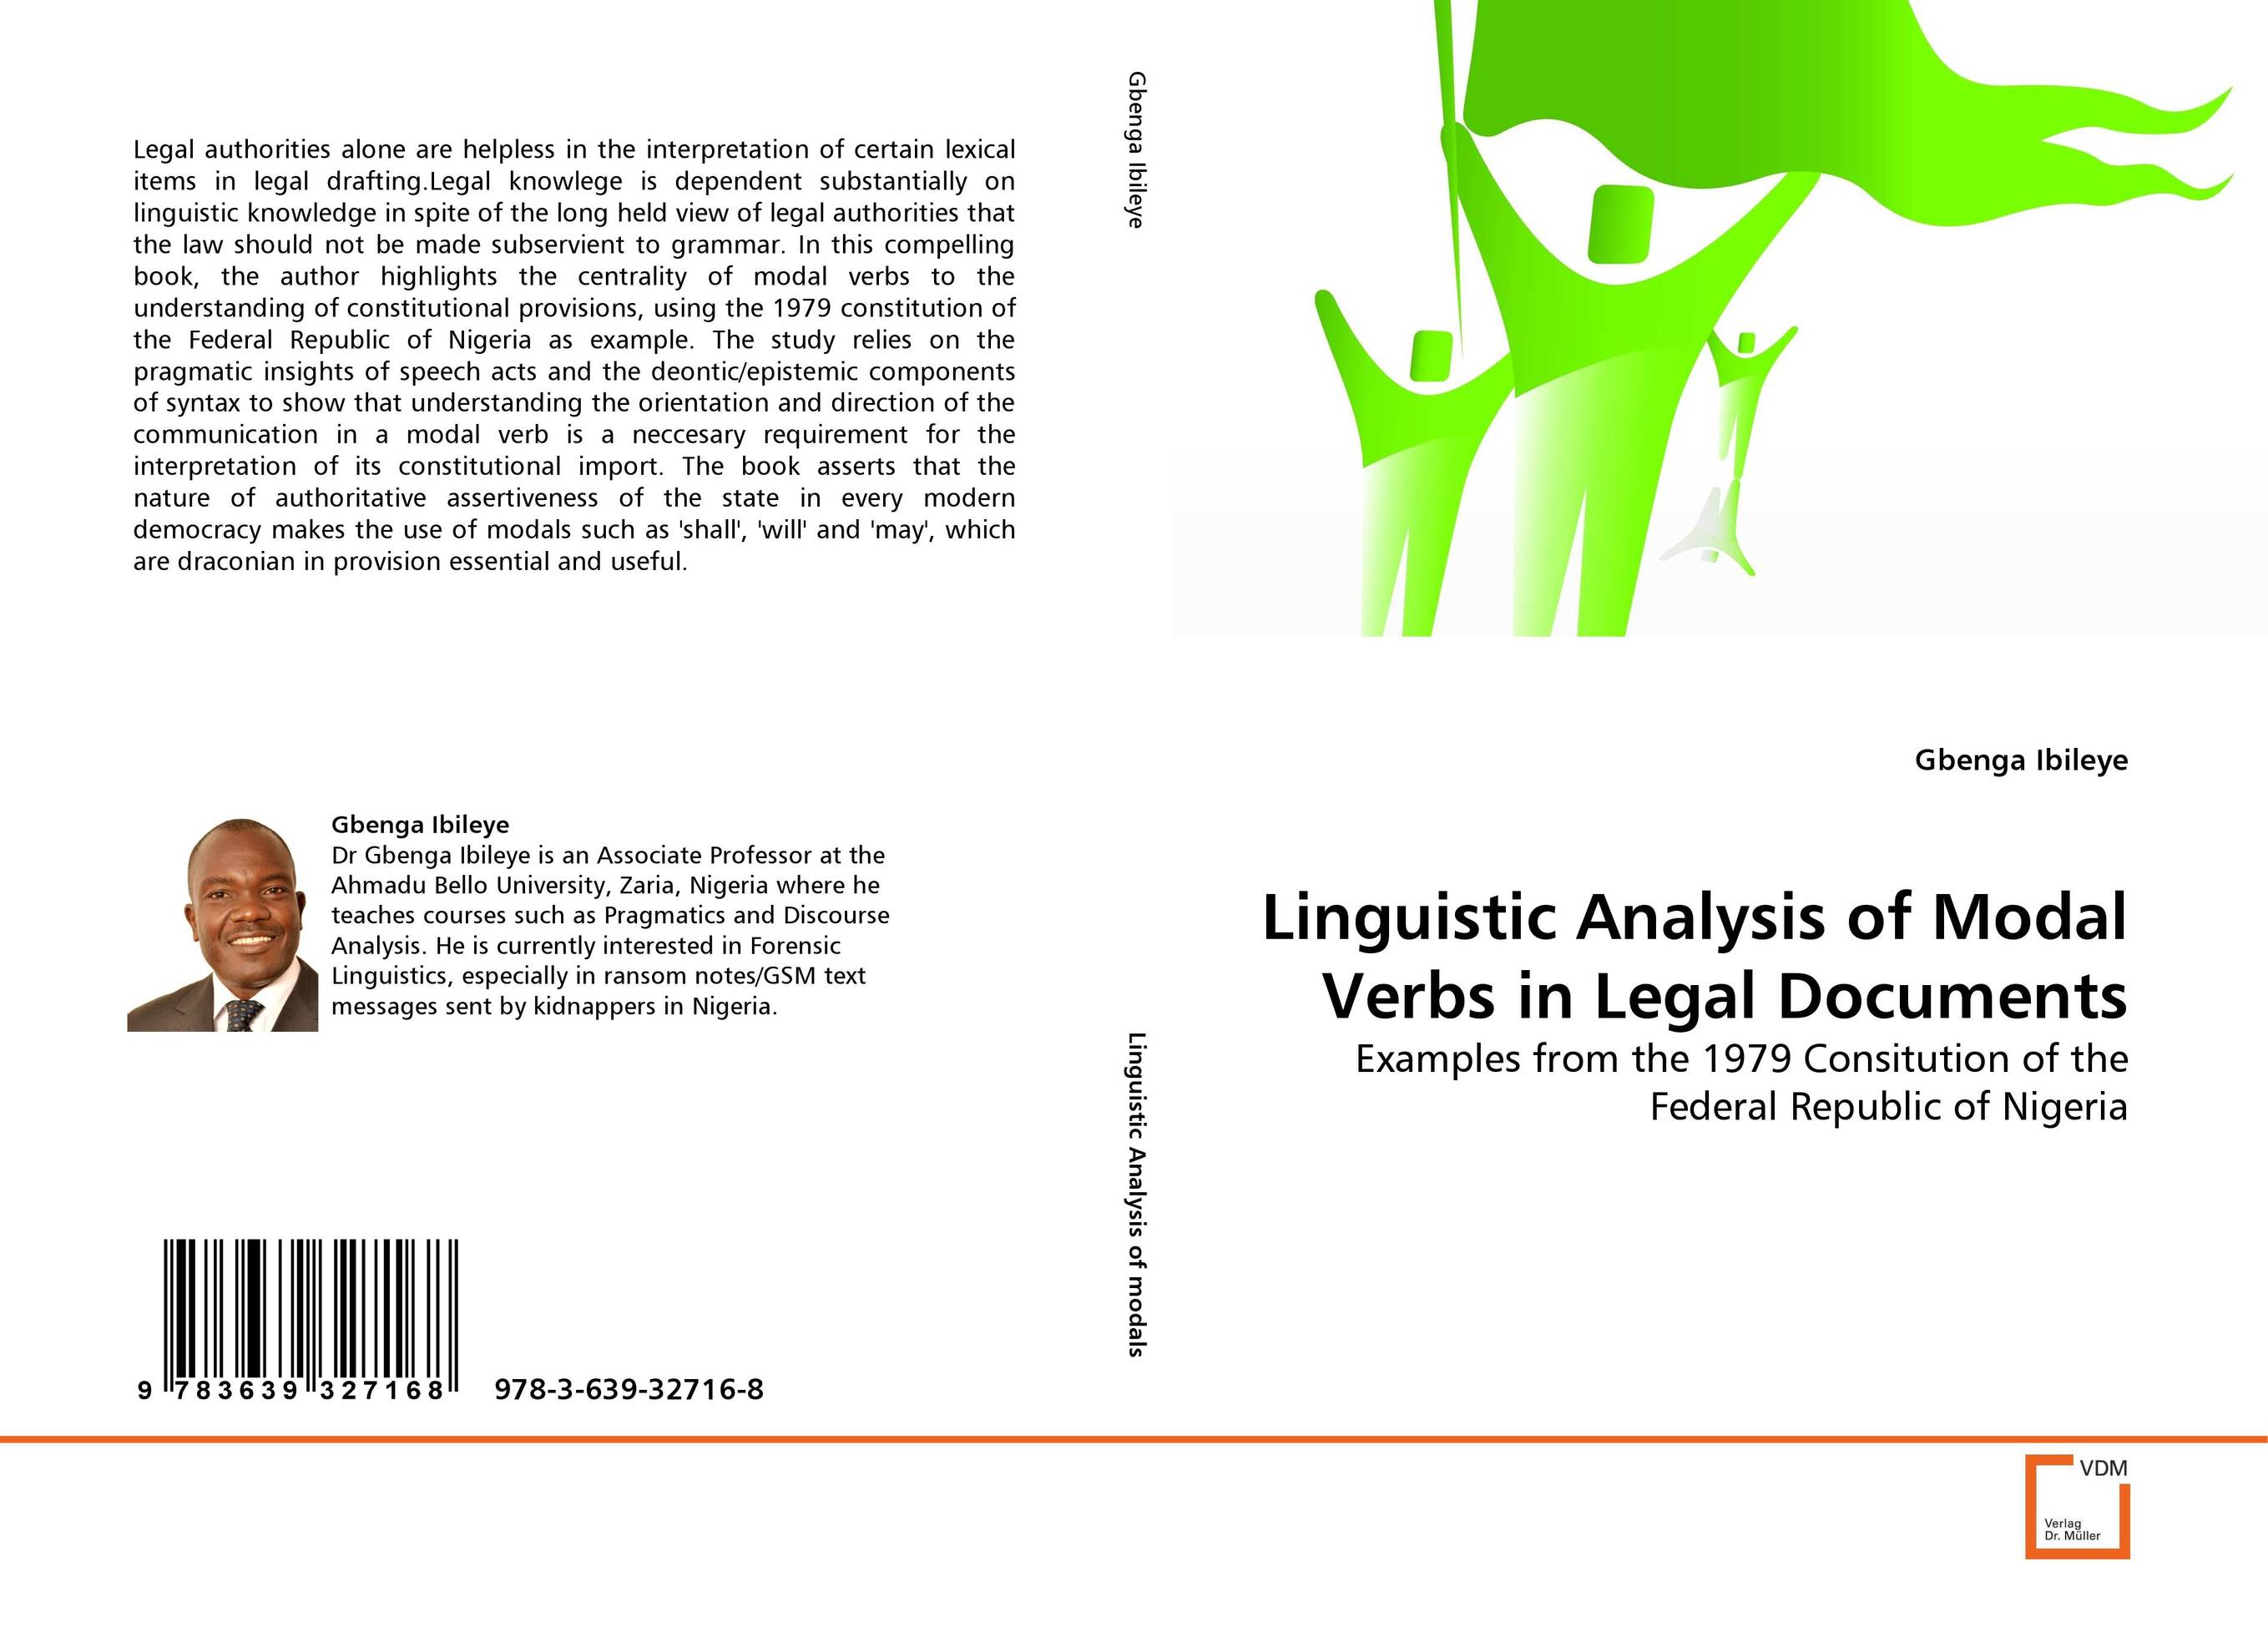 Linguistic Analysis of Modal Verbs in Legal Documents stem bromelain in silico analysis for stability and modification